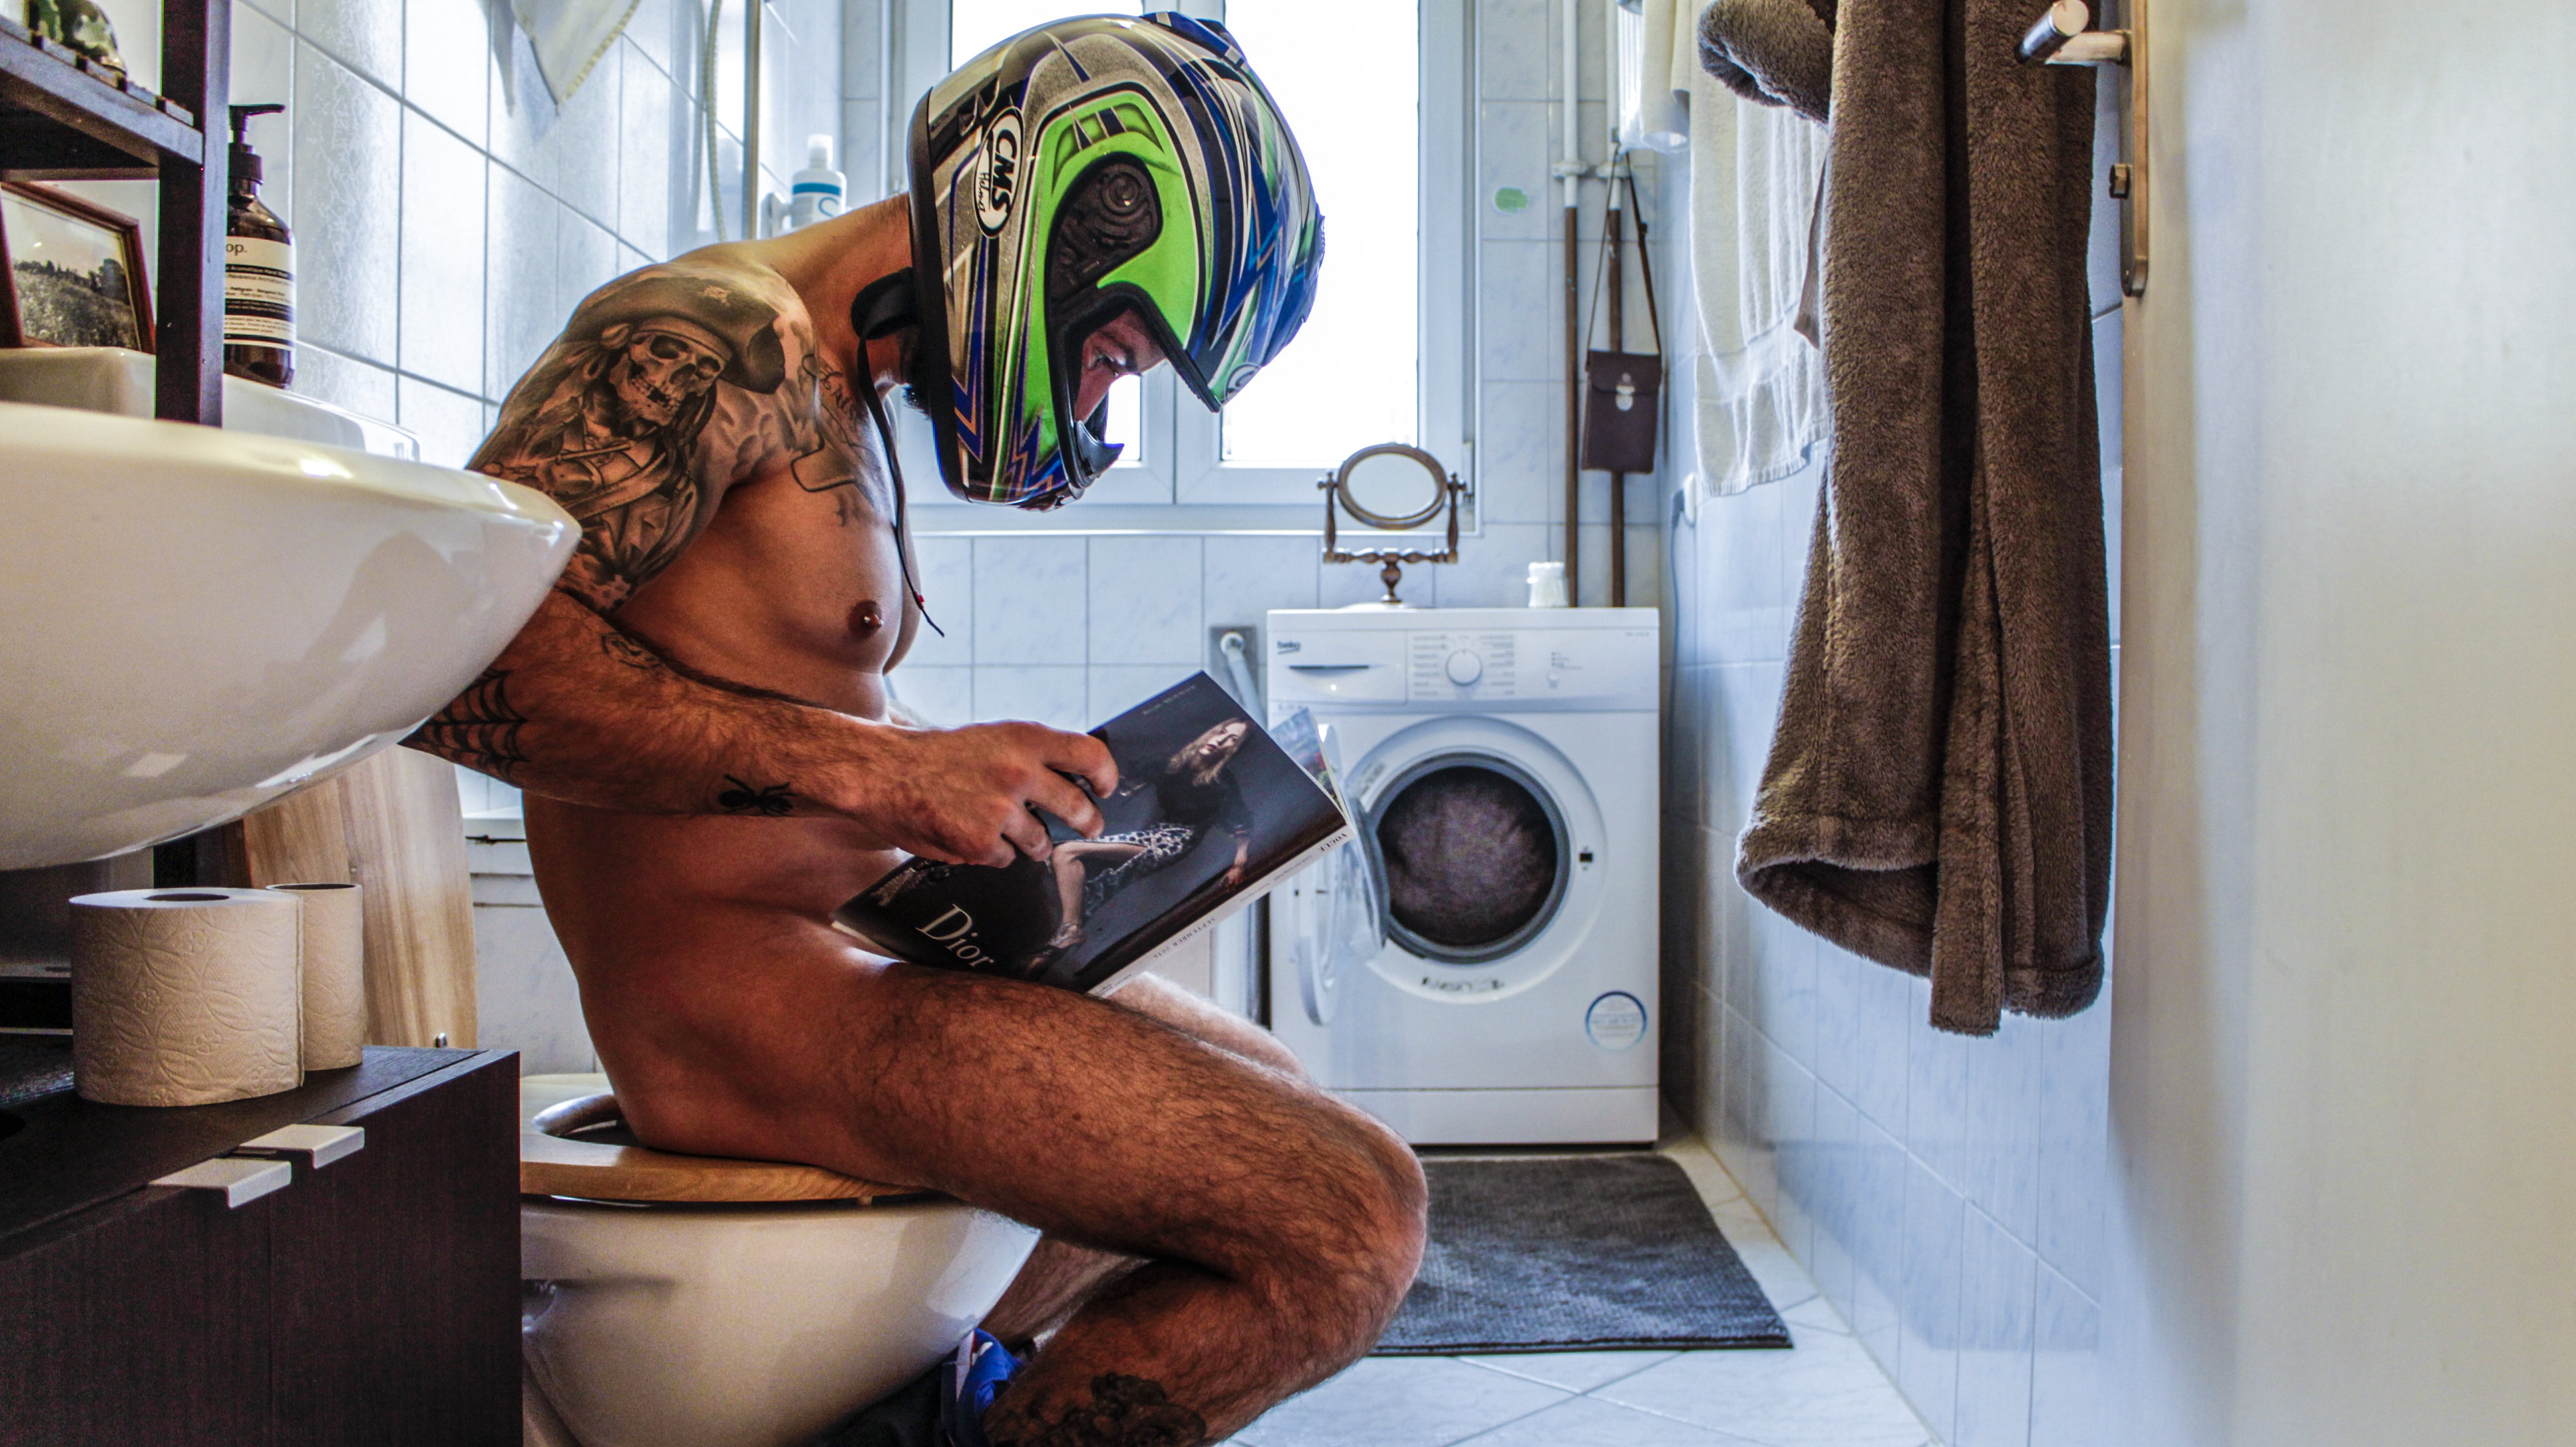 Man sitting on a toilet with the helmet on, photograph of Paco Pennino who won the Beazy Architecture contest